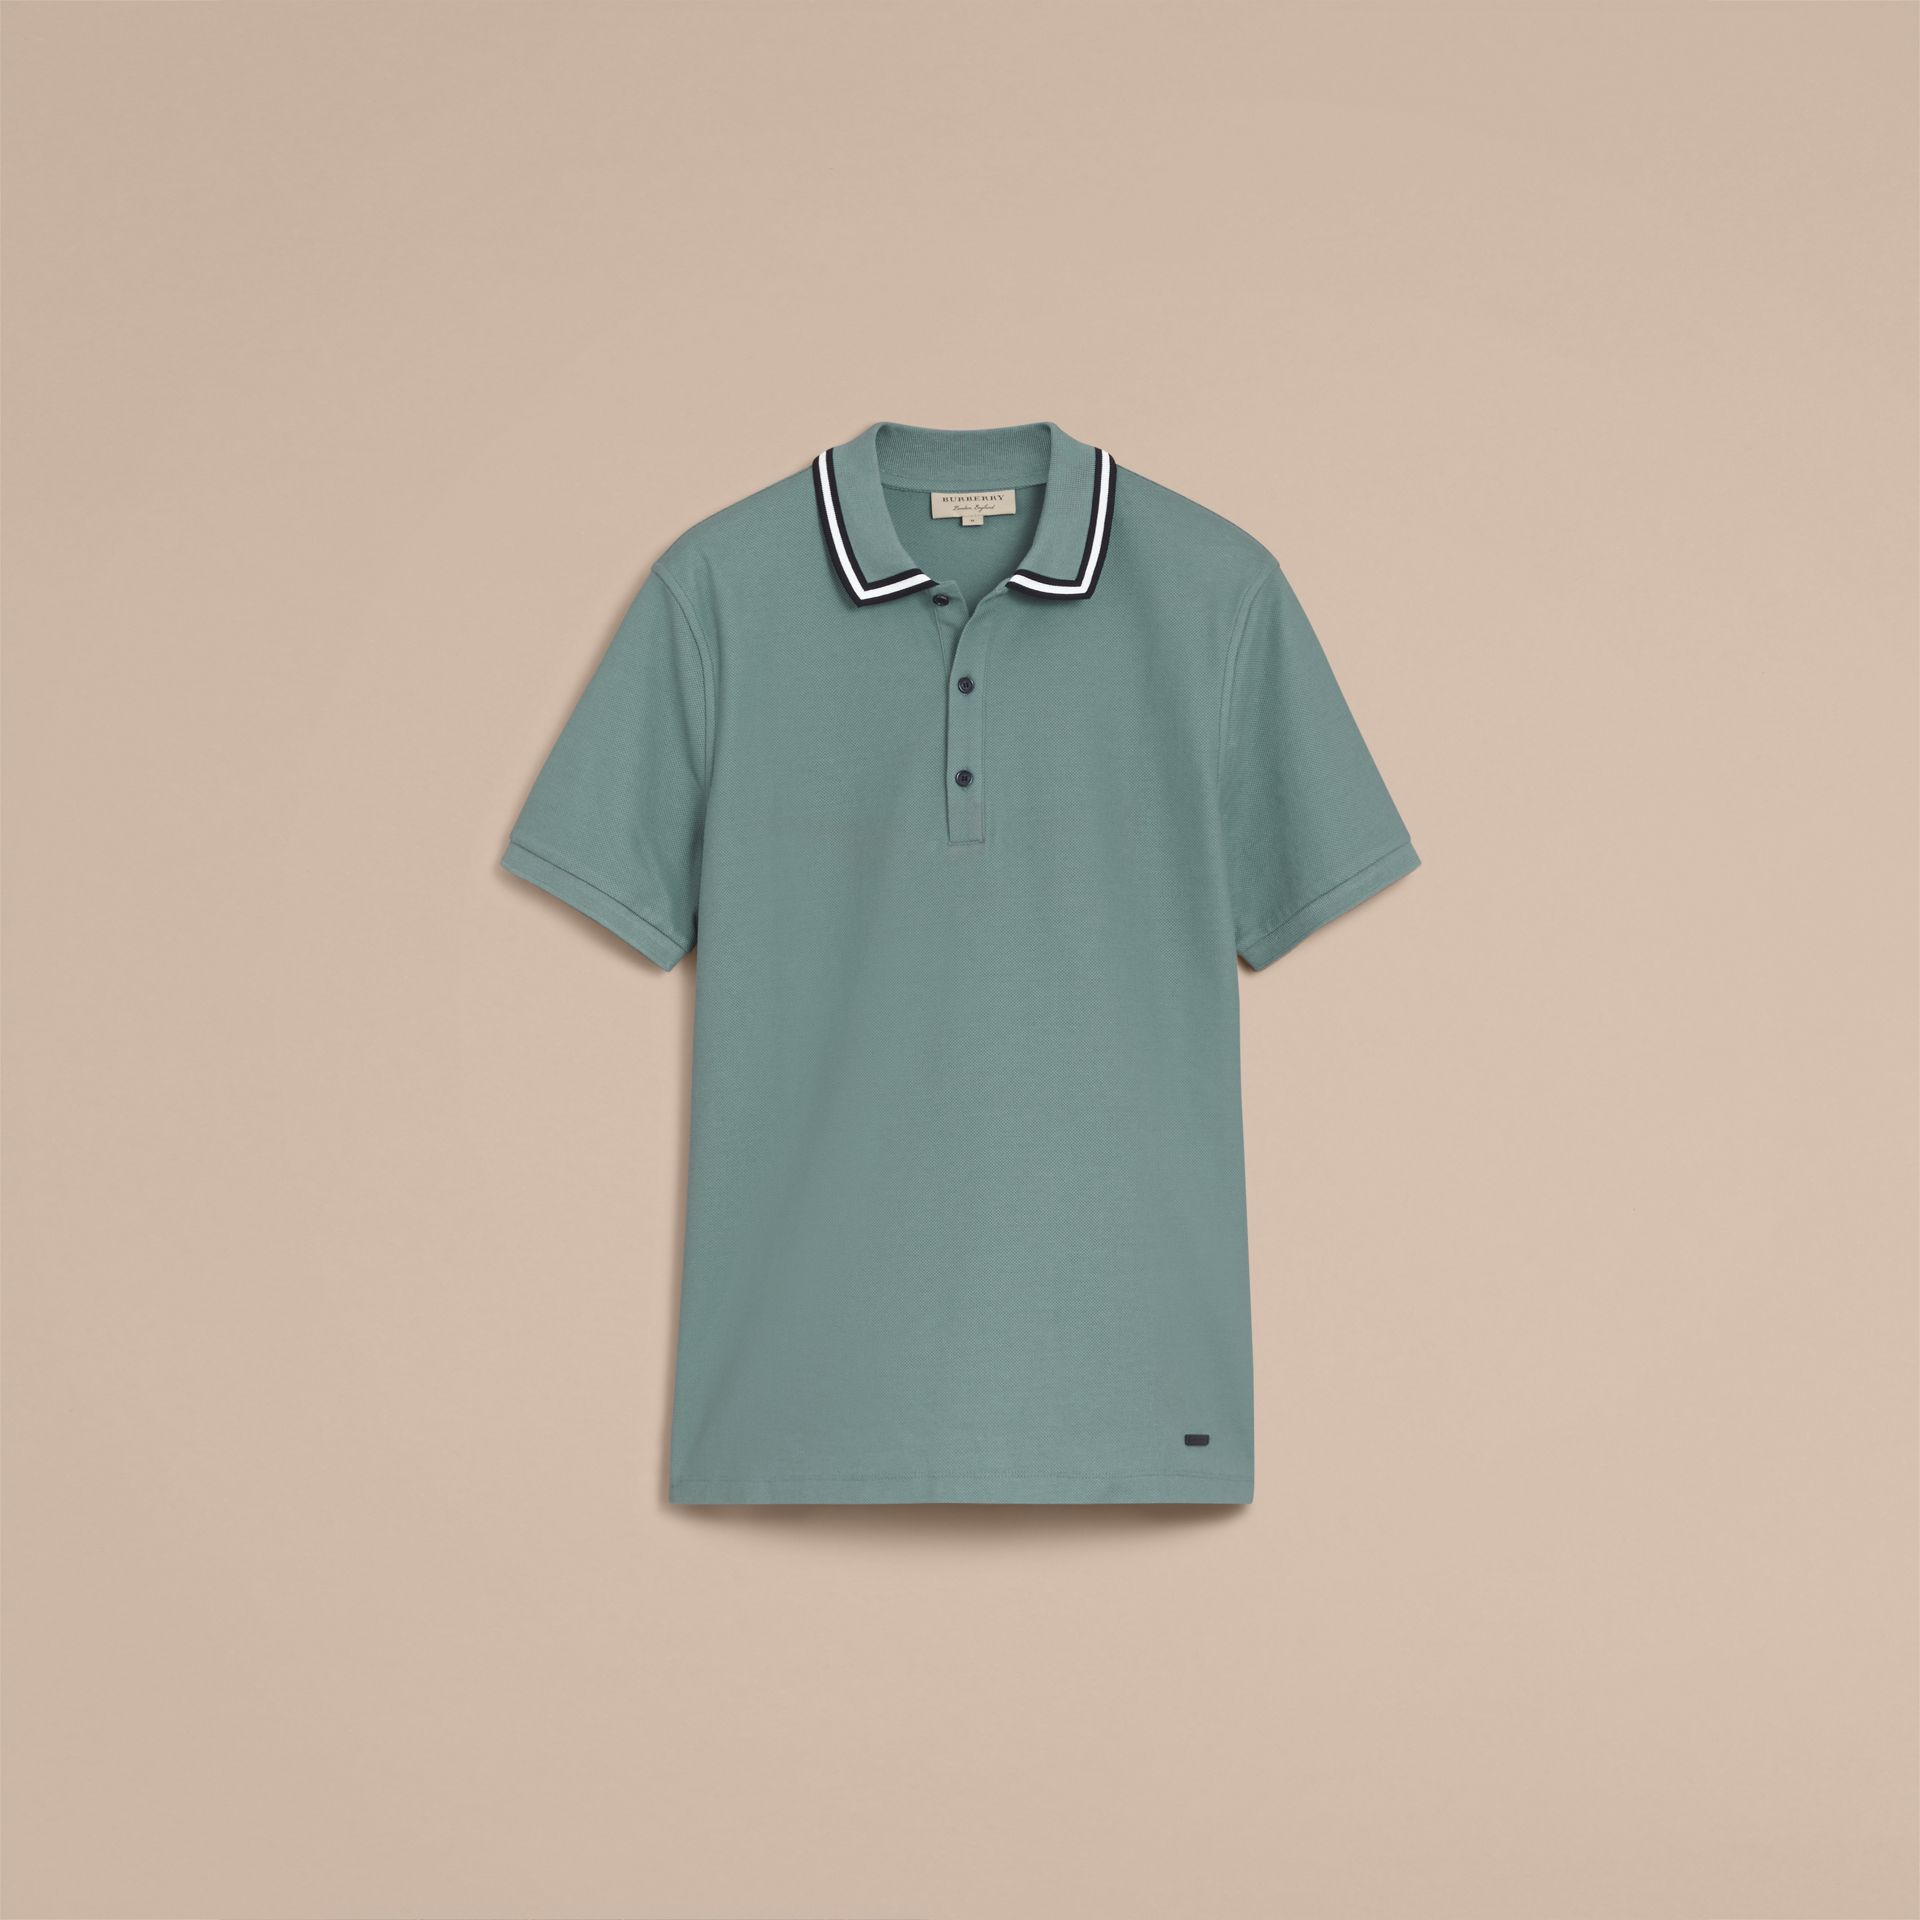 Striped Collar Cotton Piqué Polo Shirt in Pale Teal Blue - Men | Burberry Australia - gallery image 4